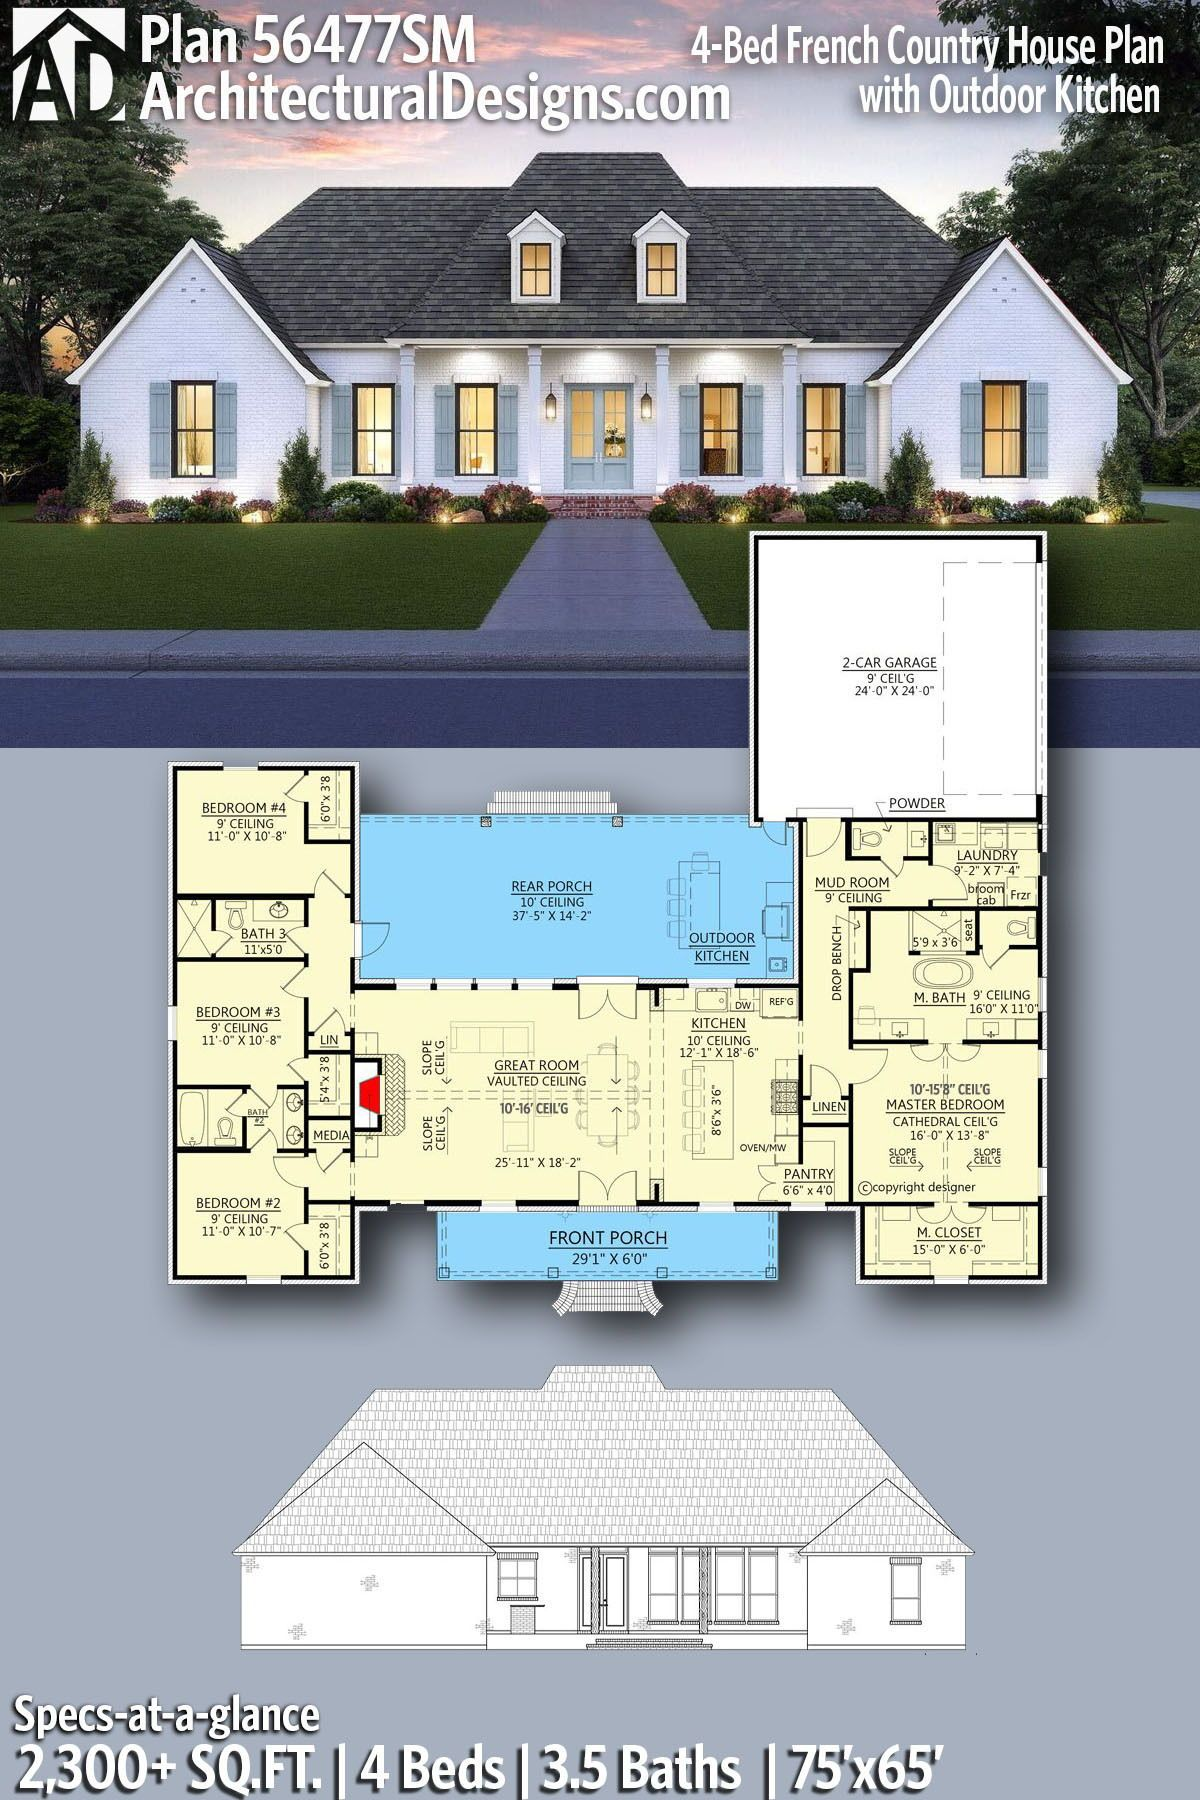 Plan 56477sm 4 Bed French Country House Plan With Outdoor Kitchen French Country House Plans Country House Plan French Country House